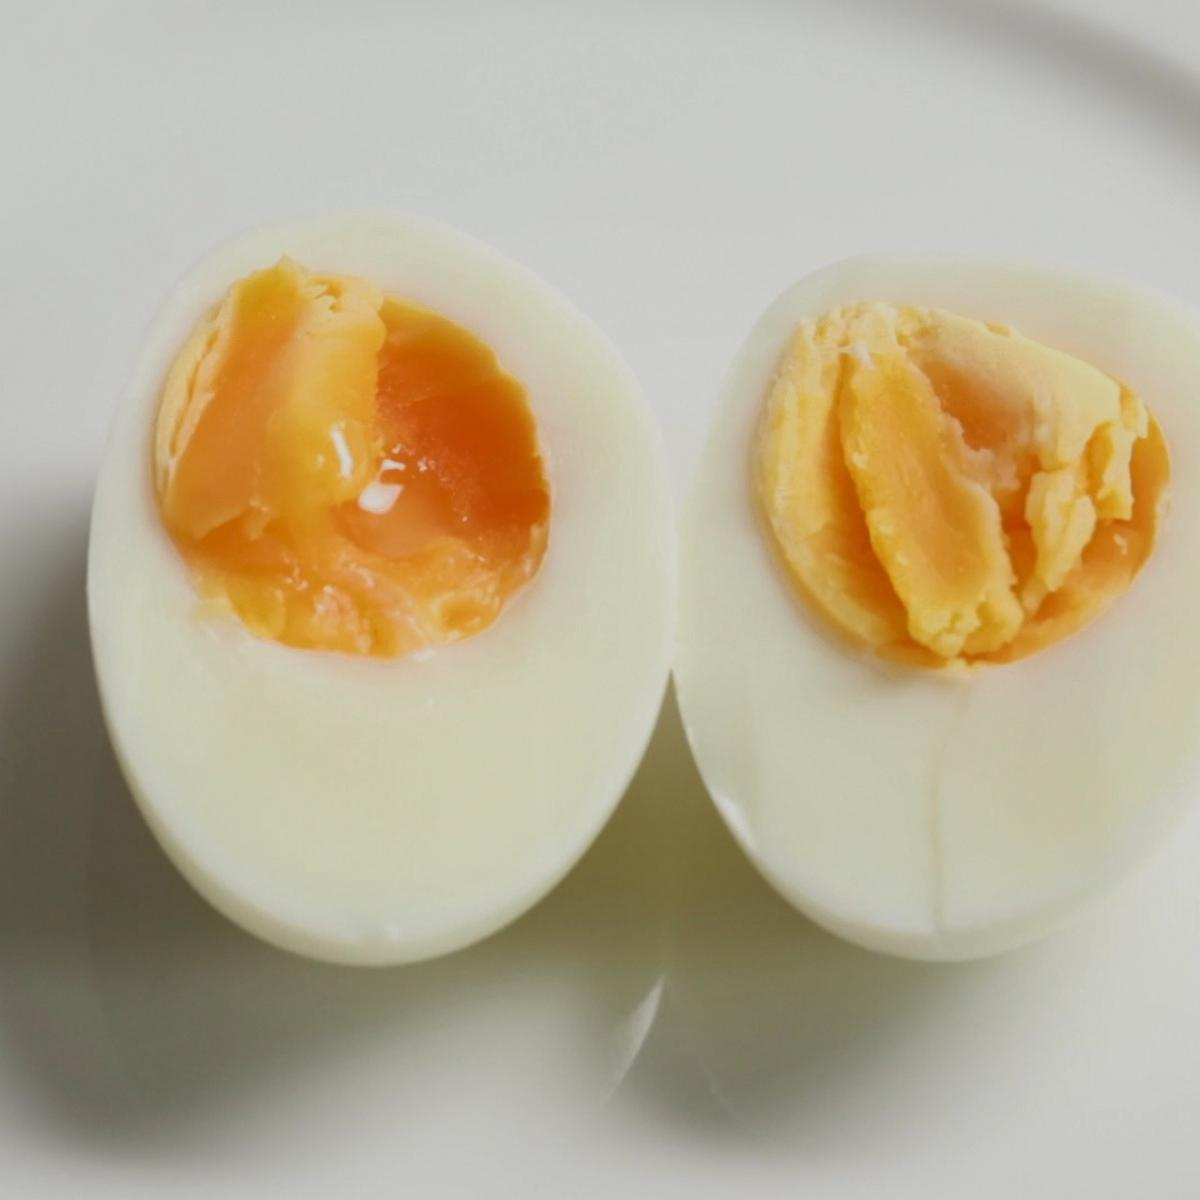 A picture of Delia's Hard-boiled Eggs recipe